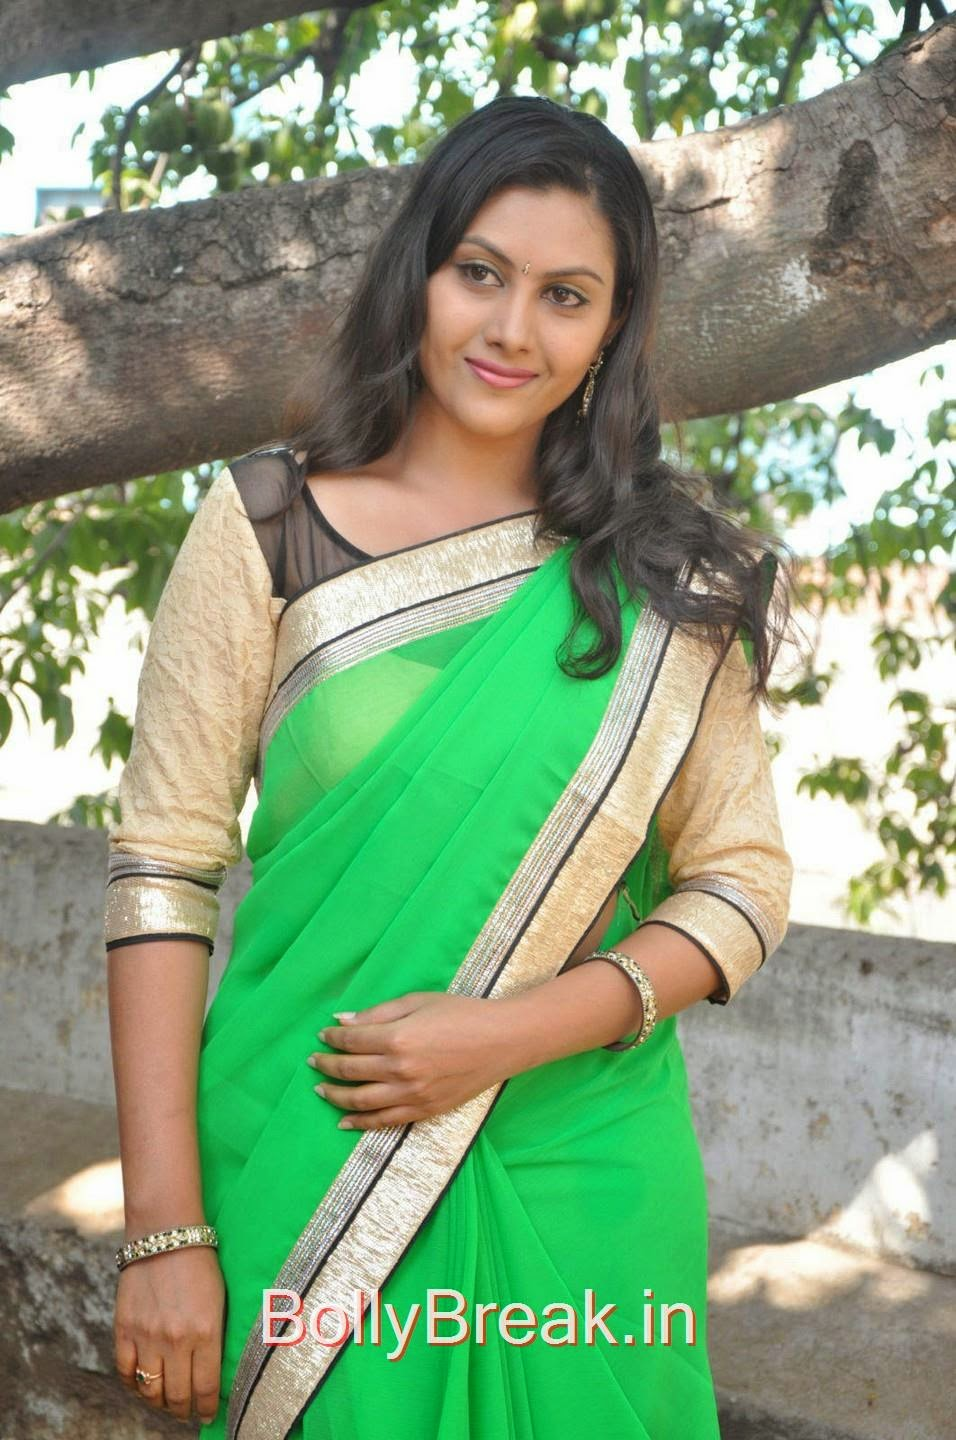 Priyanka Photo Gallery with no Watermarks, Hot Pics Of Priyanka In Green Saree from SS Art Productions Production No 1 Movie